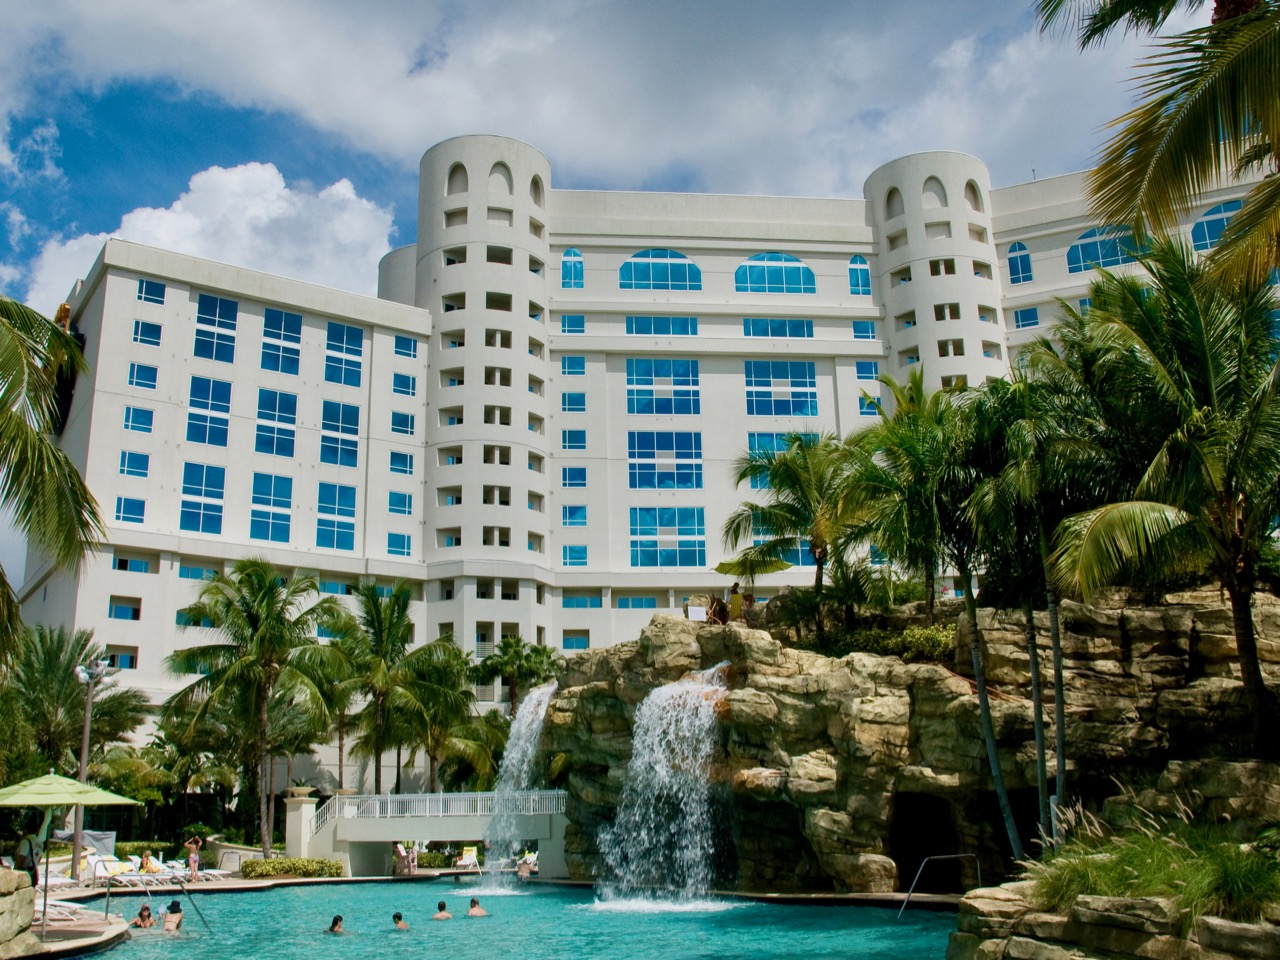 Seminole Tribe spends more than $24 million on gaming initiative